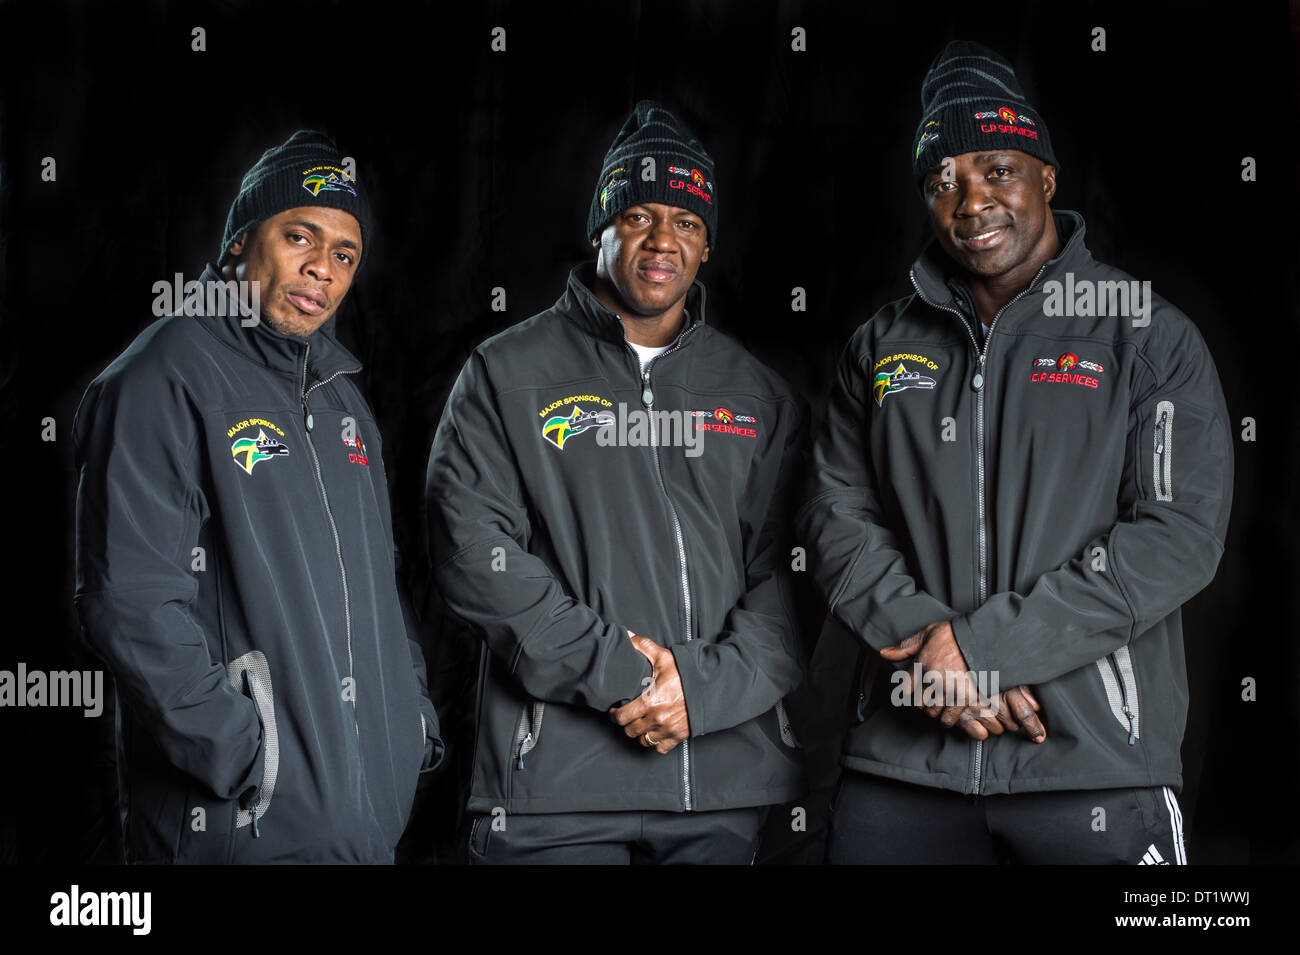 Jamaican Bobsled Team Gains Sponsorship Just in Time for Sochi Olympics - Stock Image